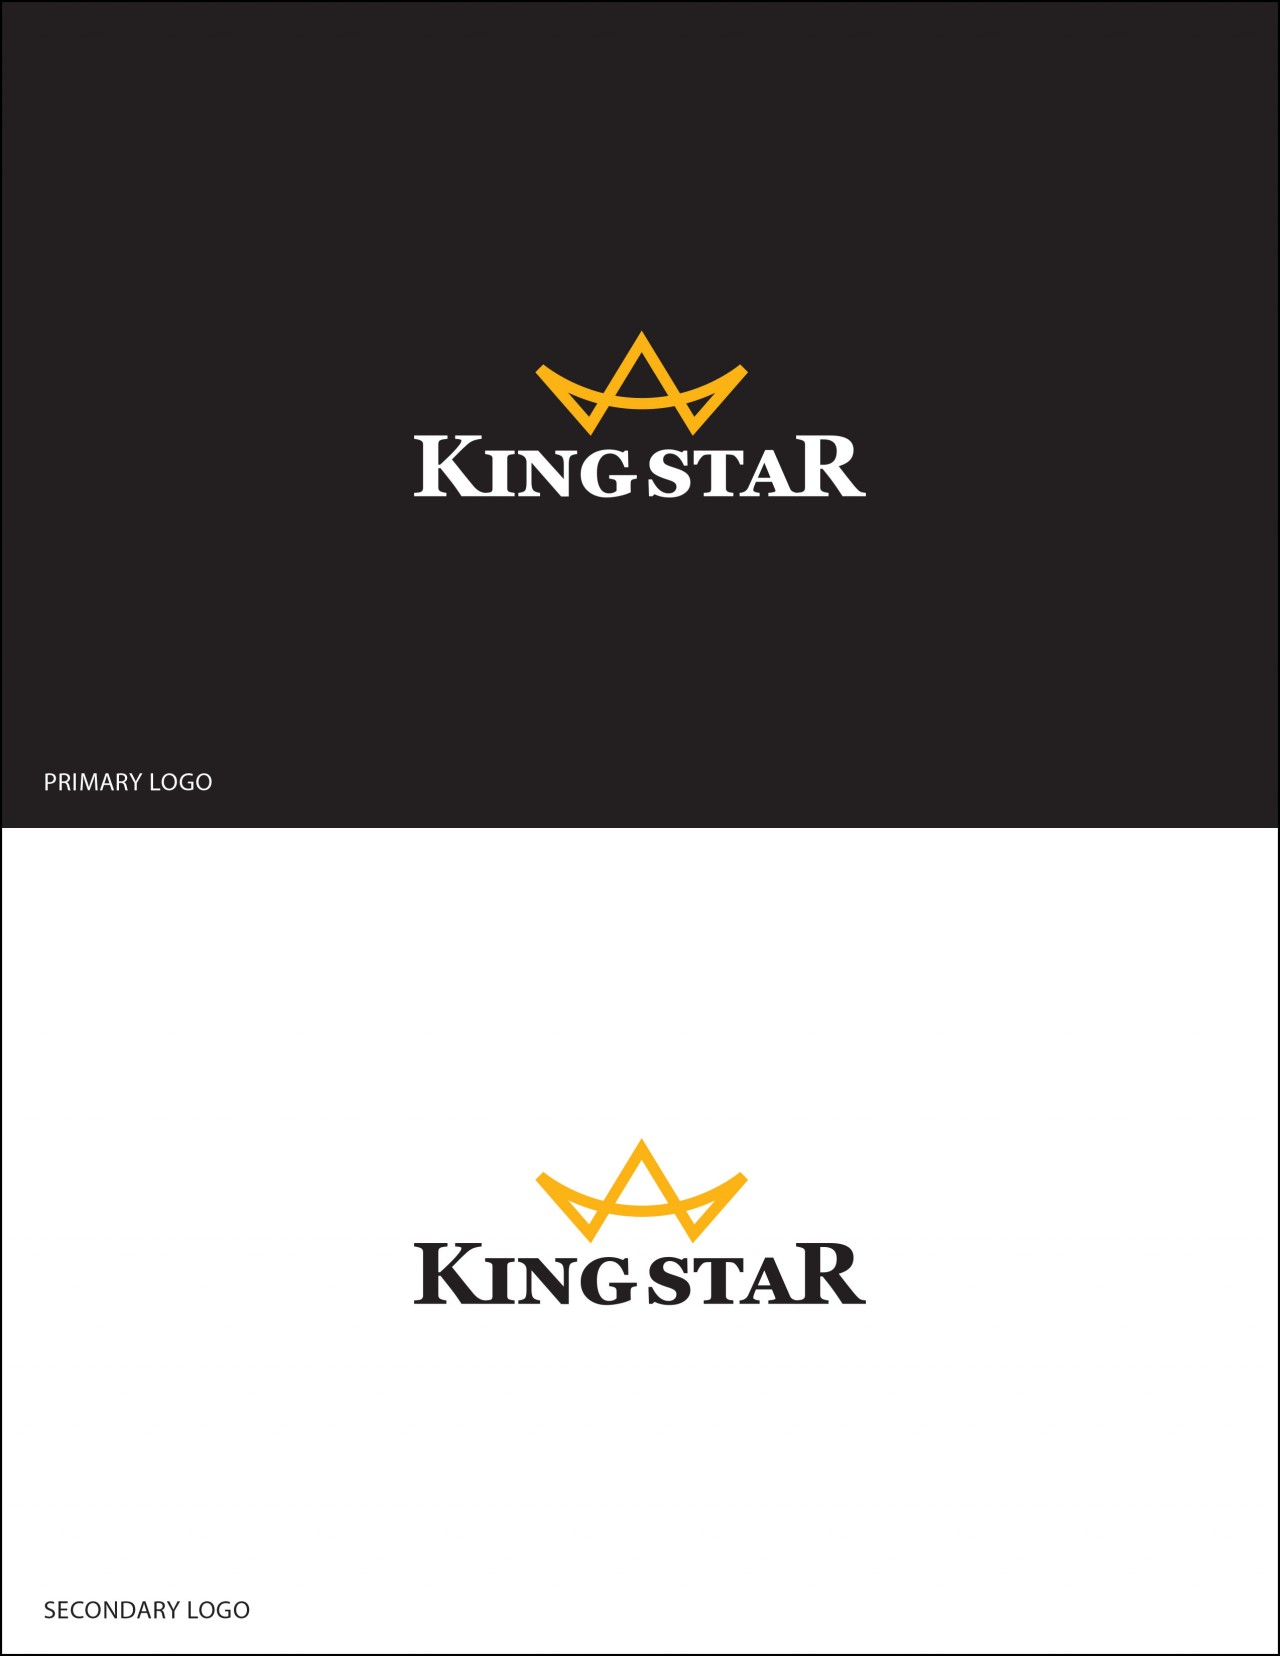 king star crown logo design